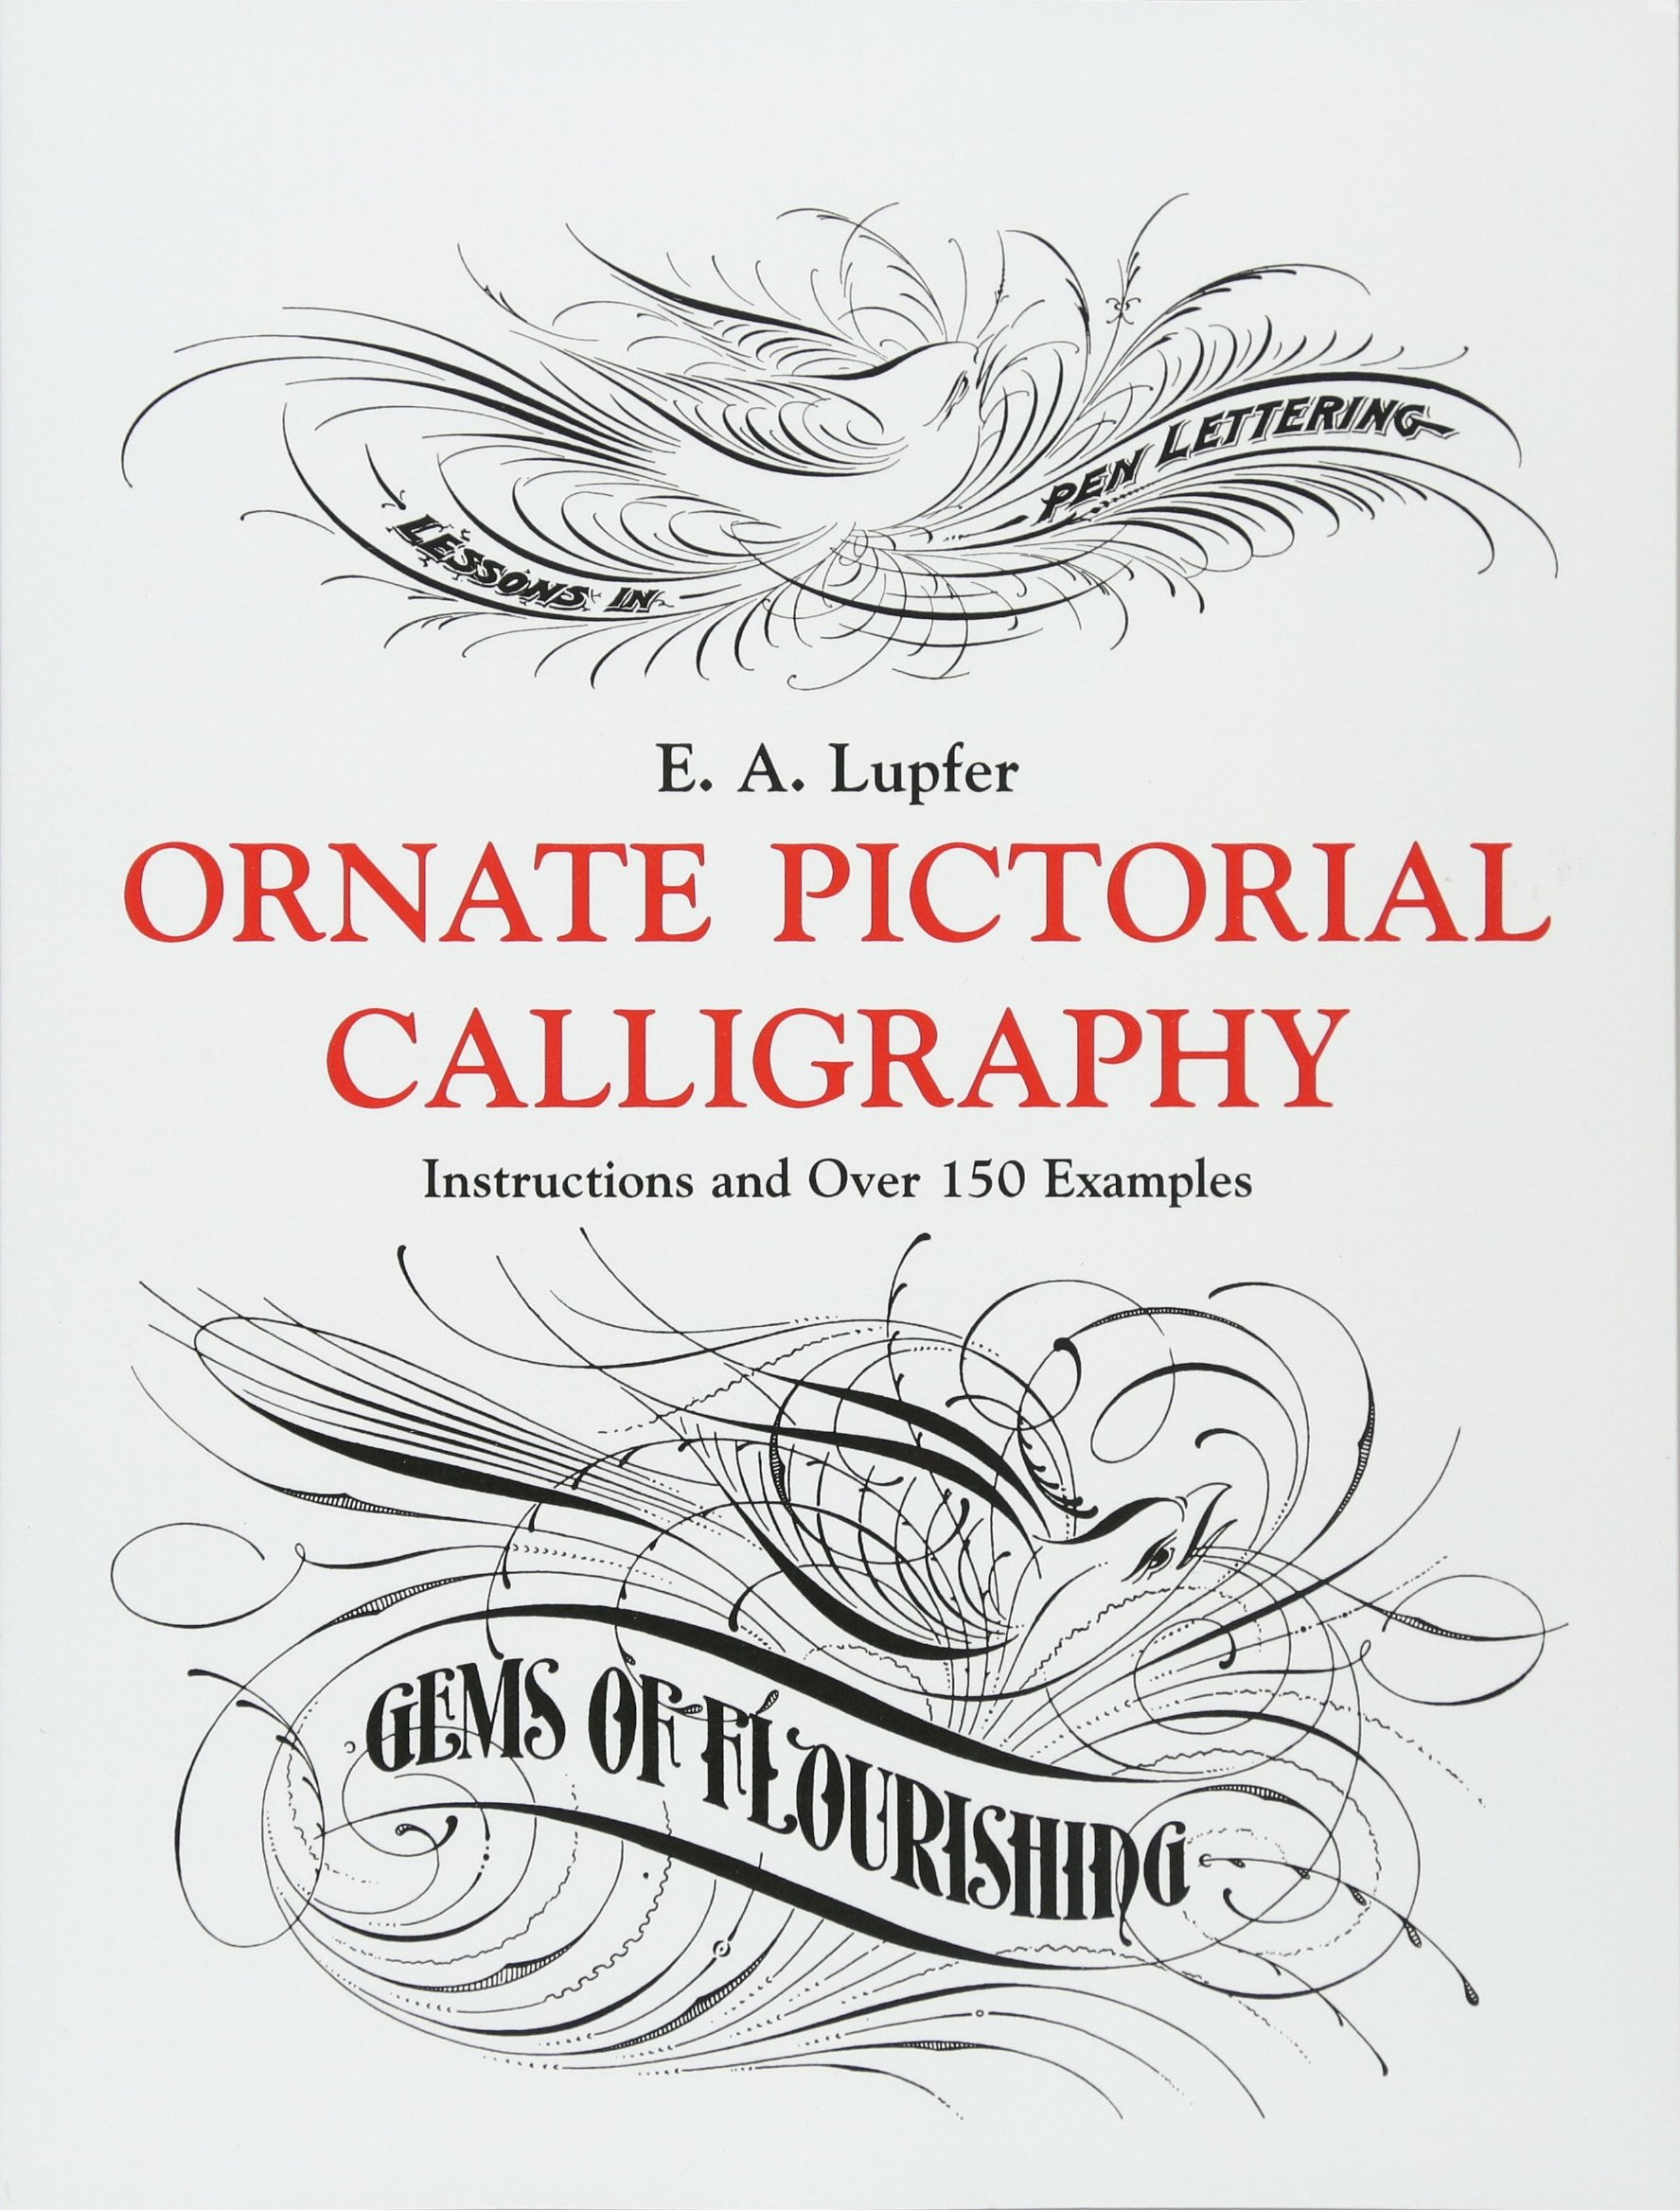 Calligraphy pdf pictorial ornate